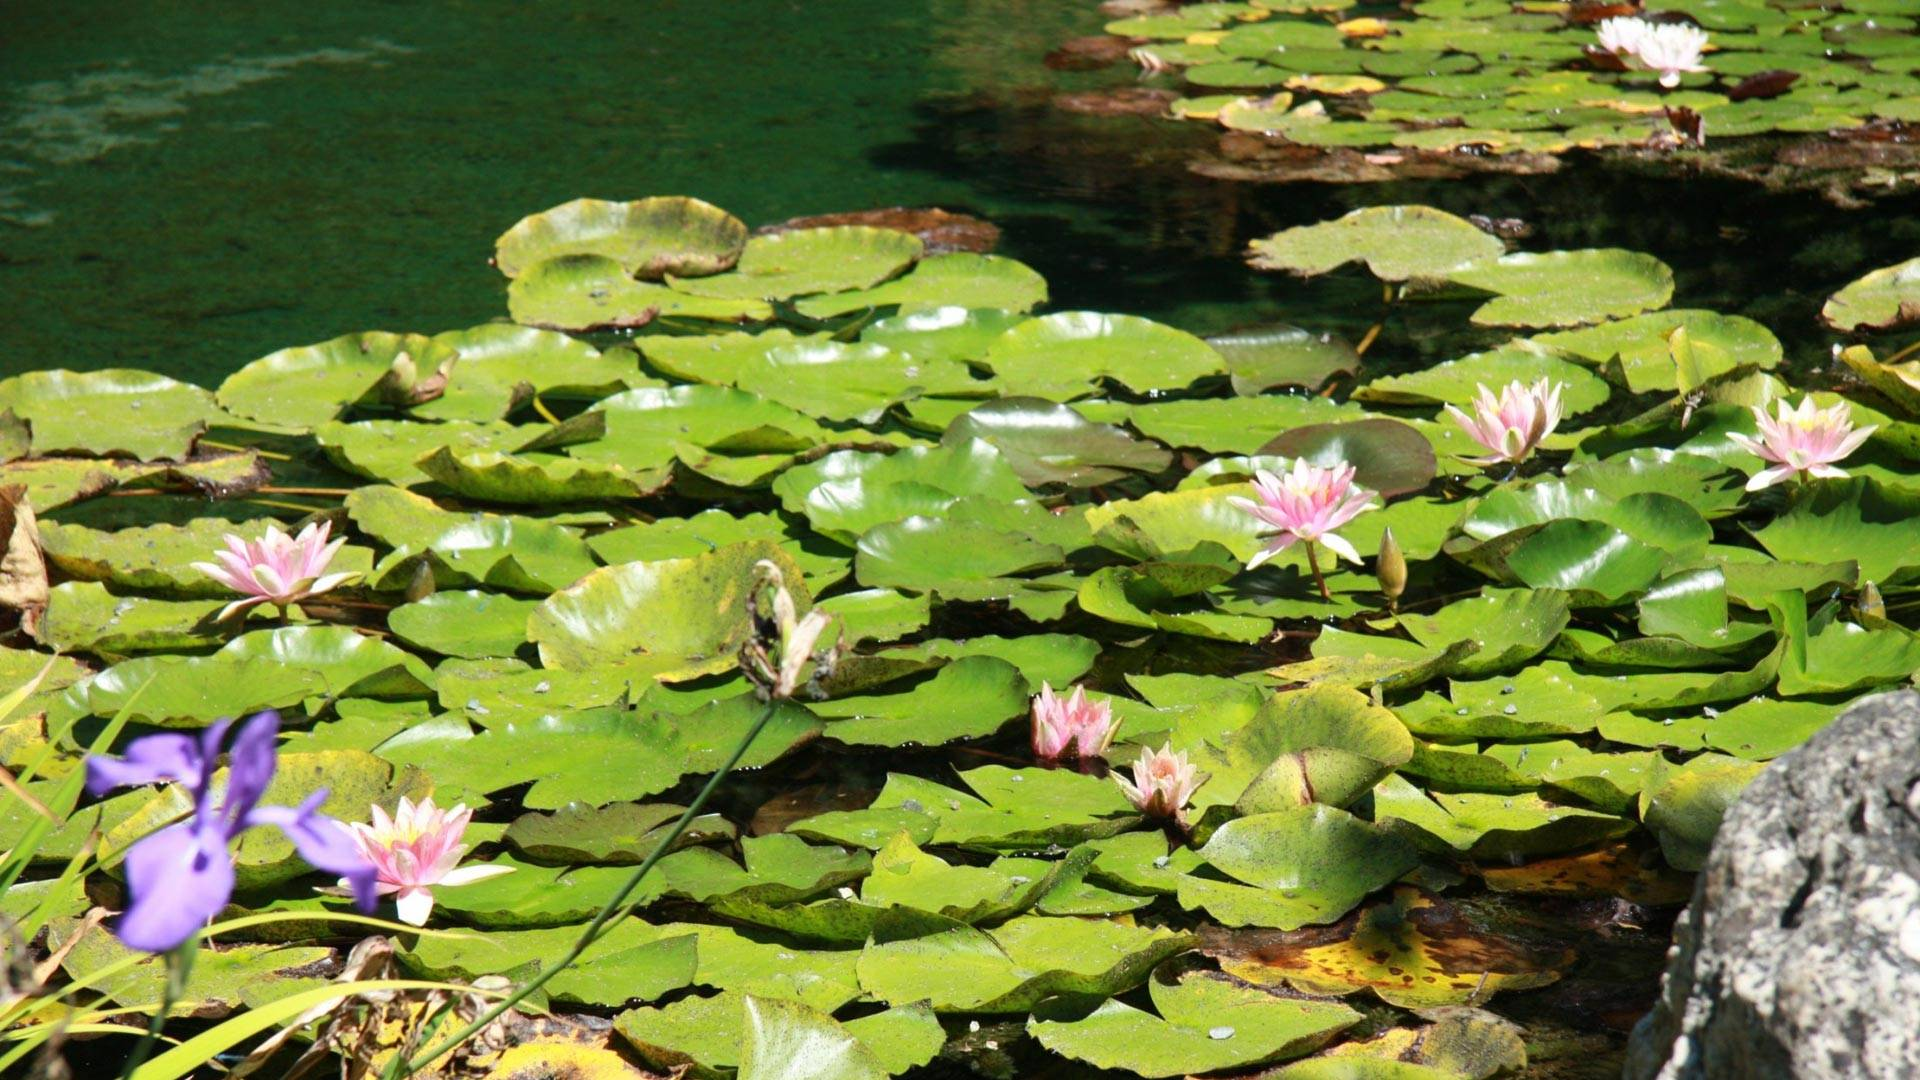 Water lilies in the Japanese Pool at UC Botanical Gardens. UC Botanical Gardens